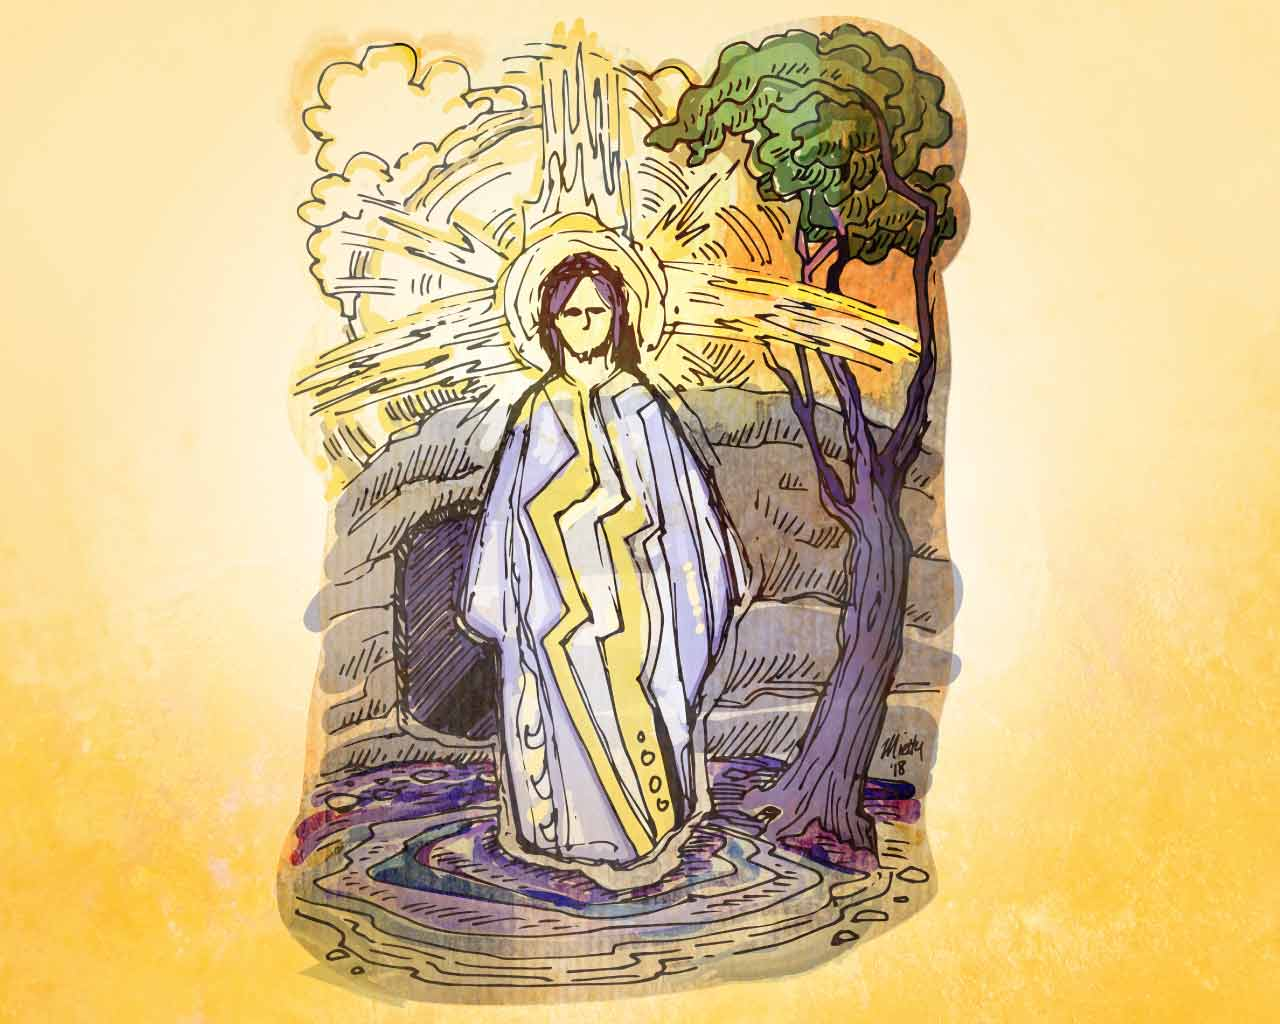 Illustration of the resurrected Christ by Timothy Mietty